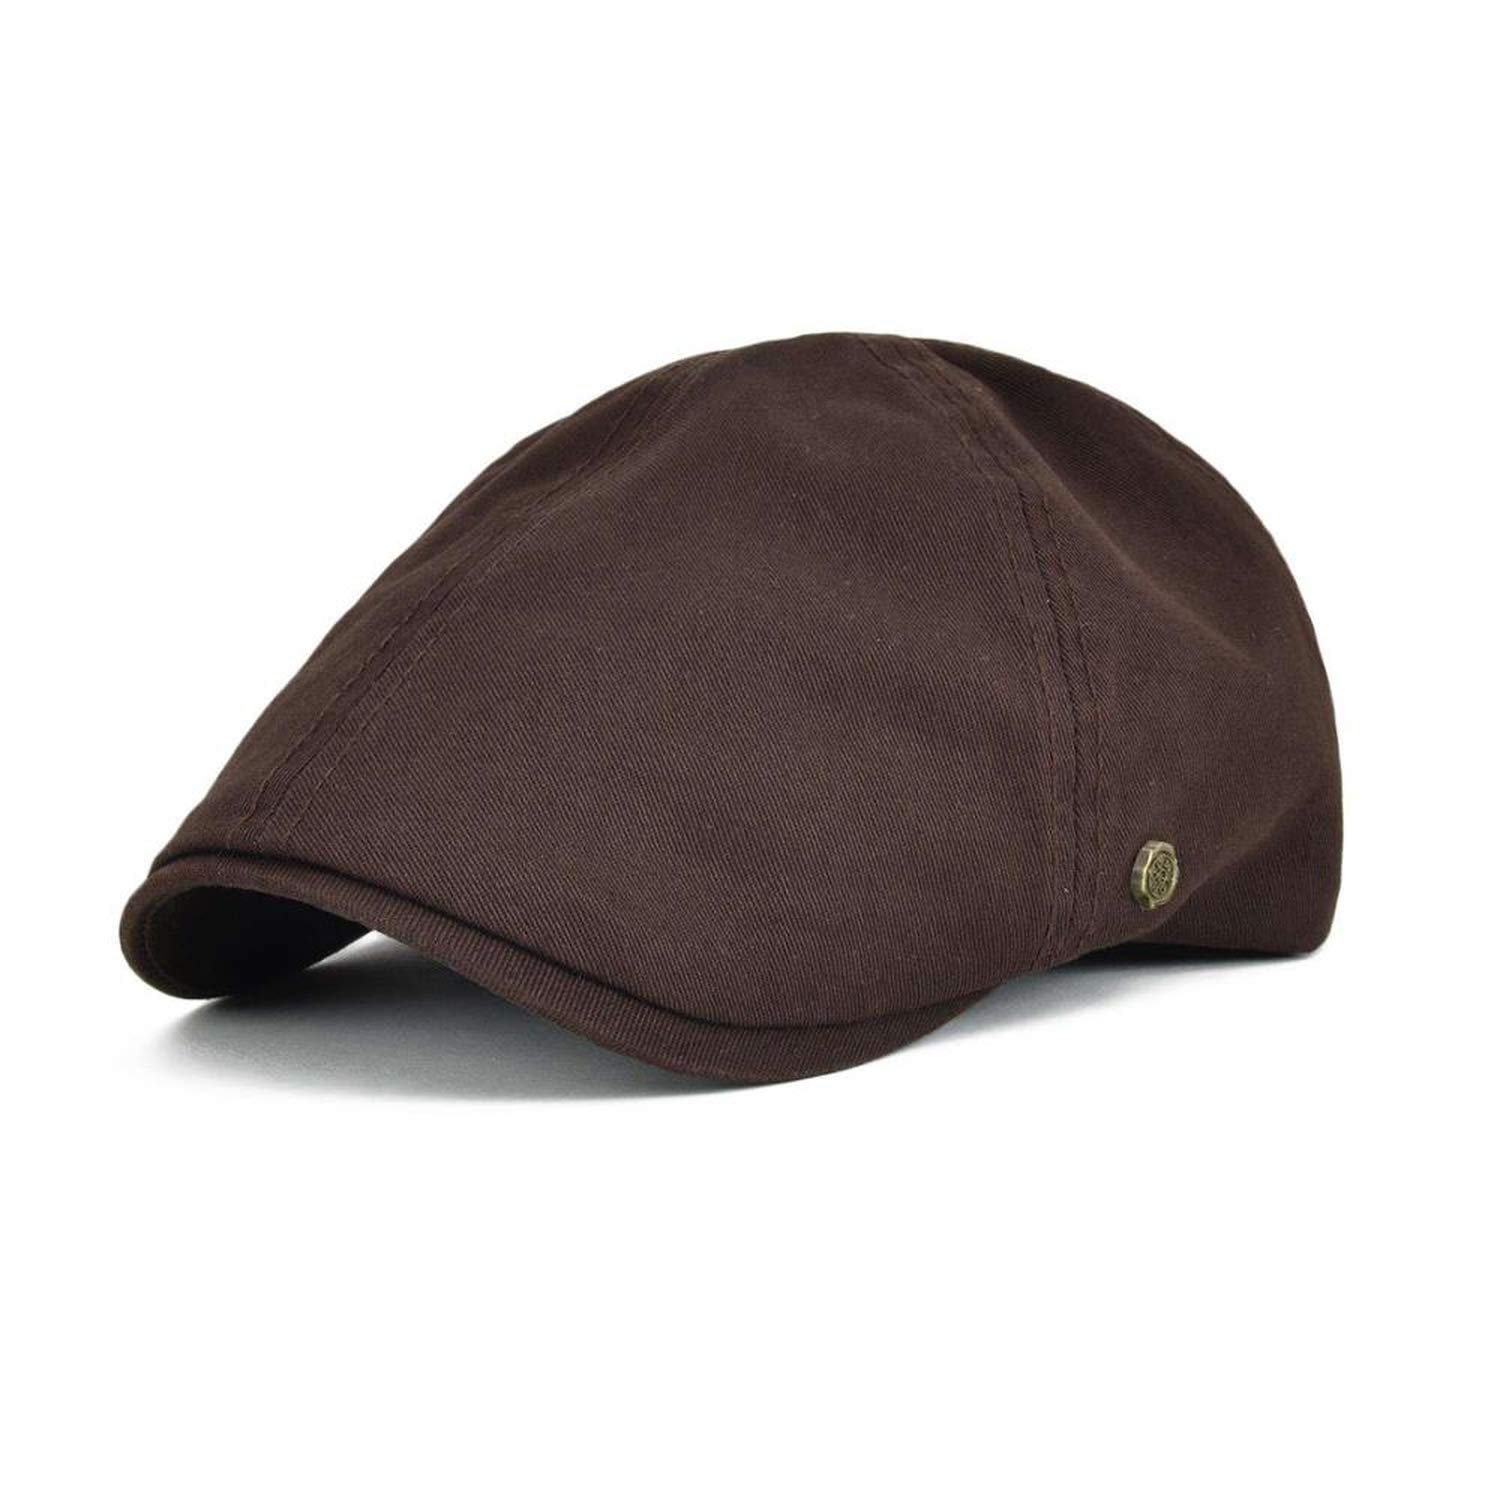 CHENTAI Summer Cotton Flat Cap Ivy Caps Men Women Burgundy Newsboy Driver Solid Color Casual Camouflage Beret